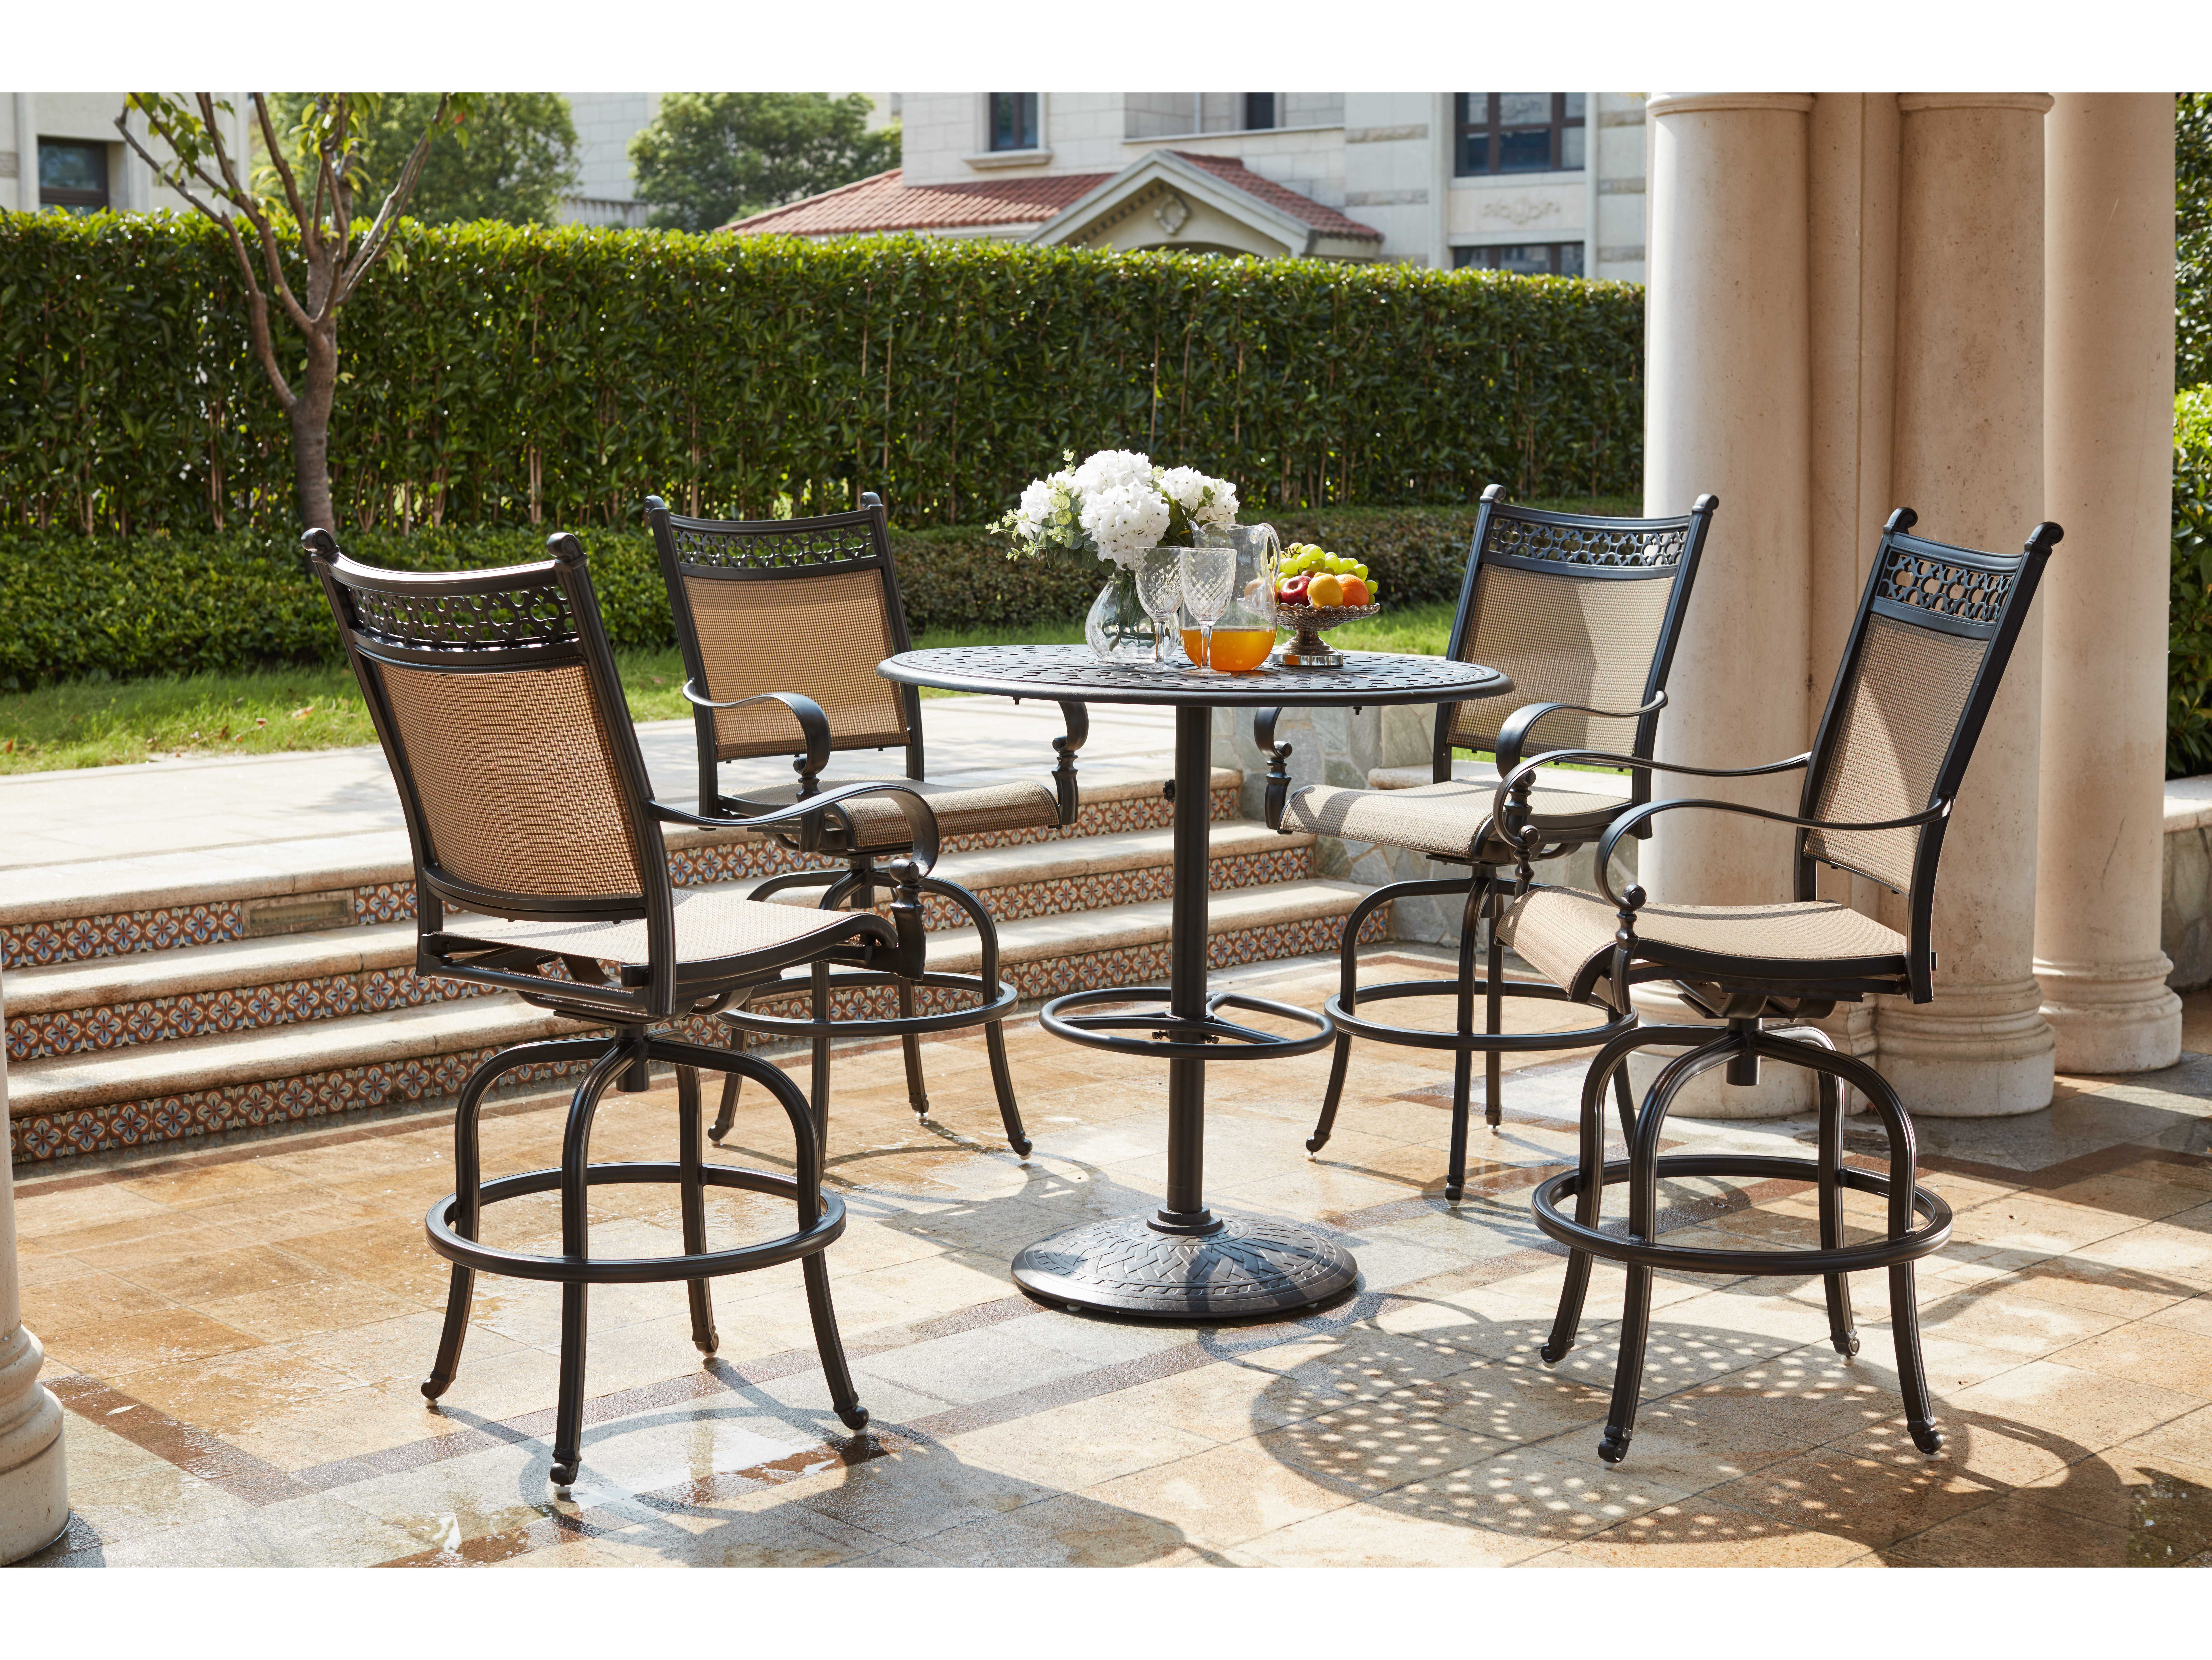 Darlee Outdoor Living Standard Mountain View Cast Aluminum 5 Piece Pedestal Bar Set With 42 Inch Round Table In Antique Bronze